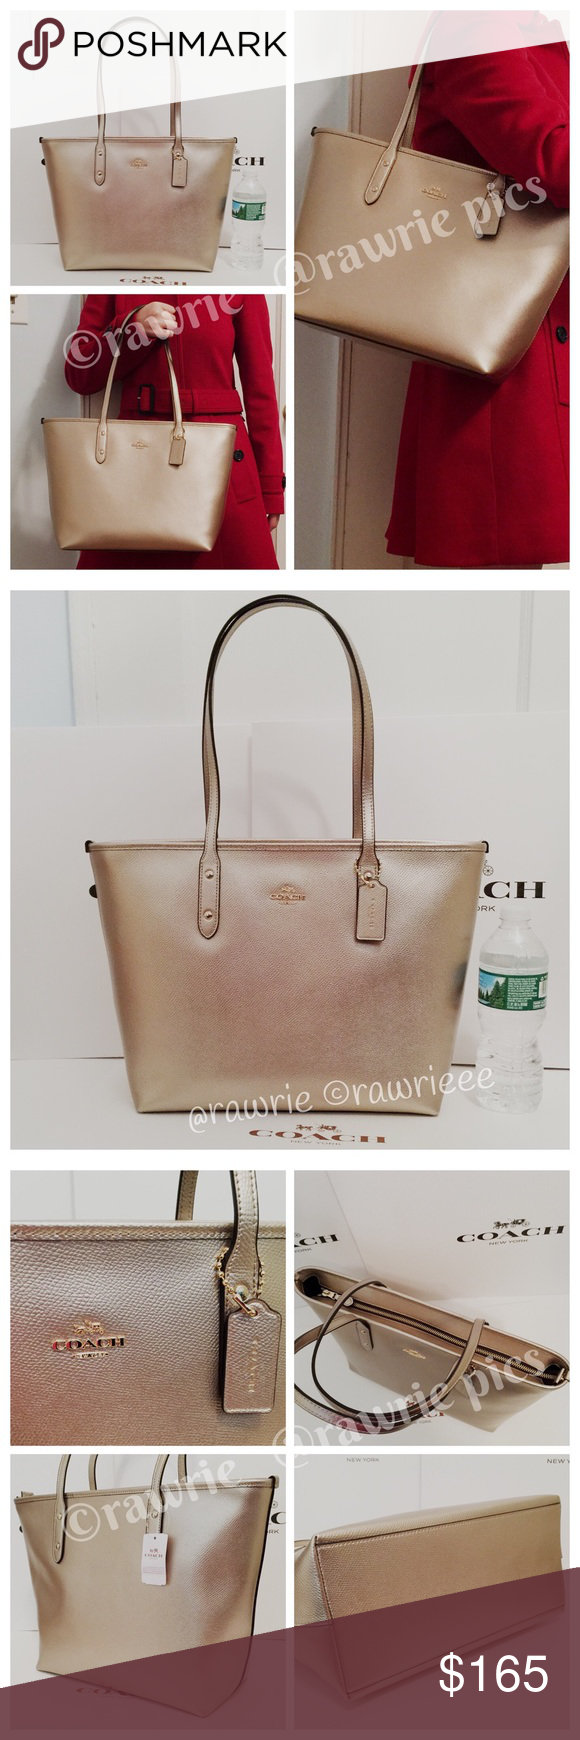 bc3fd723 New Coach metallic leather city zip tote 100% authentic. Crossgrain ...